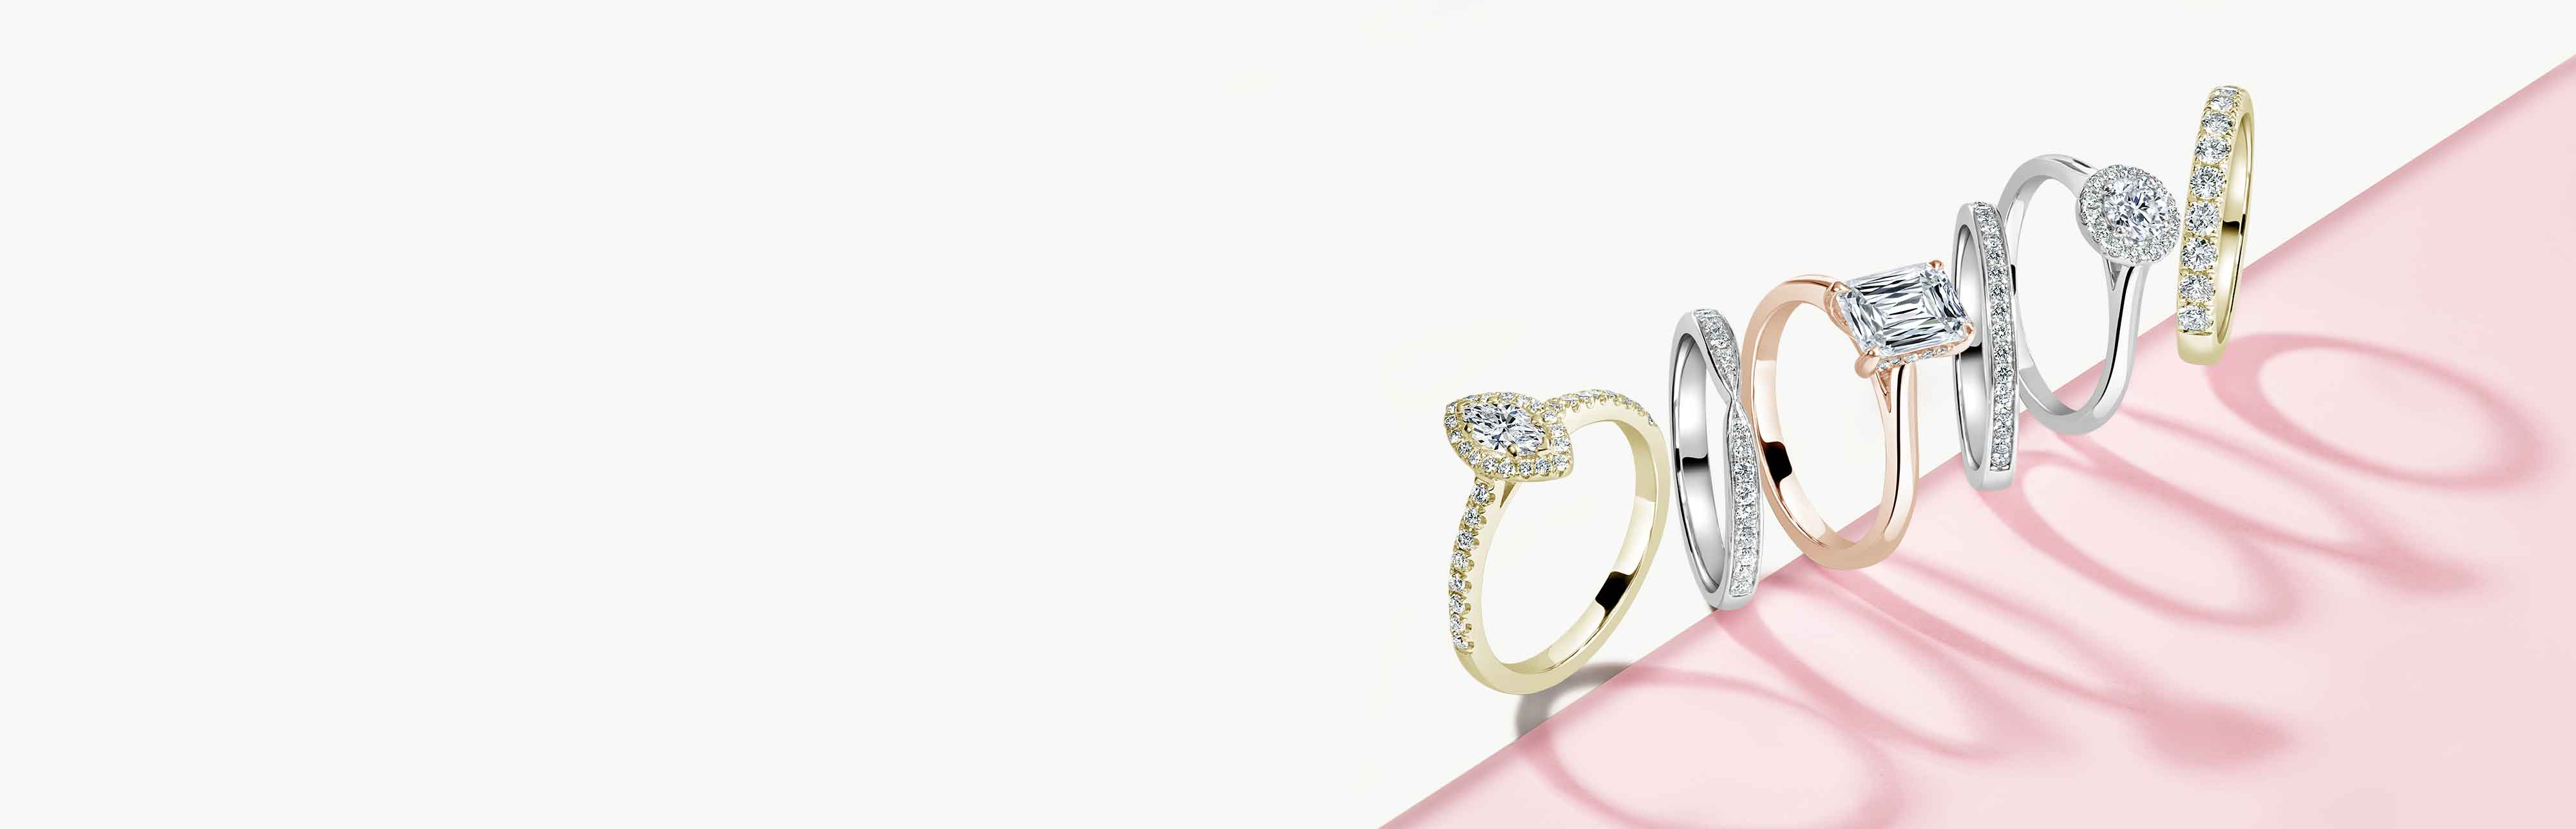 Round Brilliant Three Stone Engagement Rings - Steven Stone